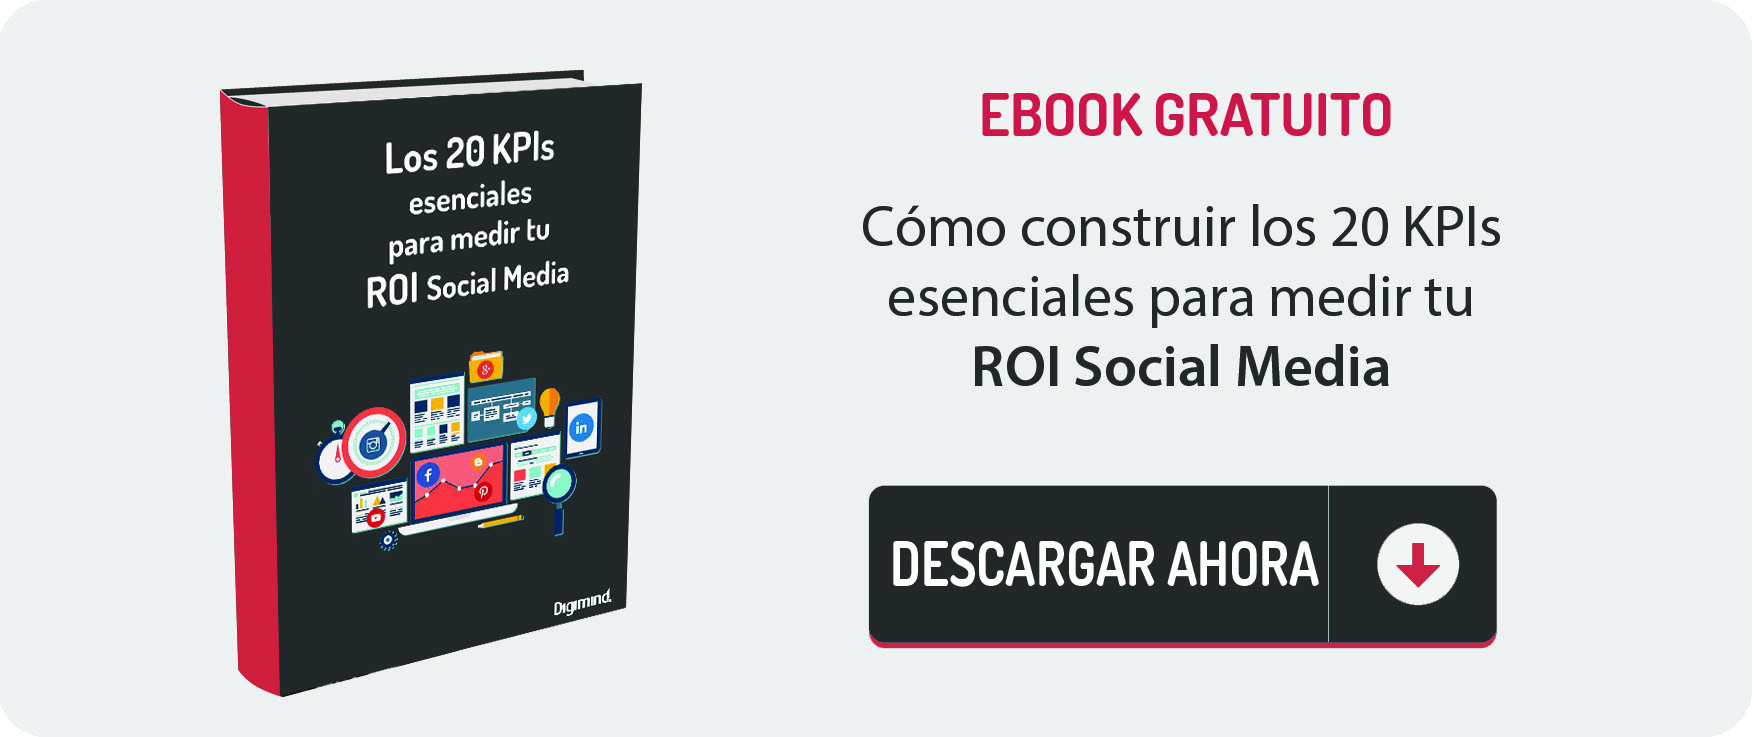 Cómo crear dashboards para tus KPIs Social Media?